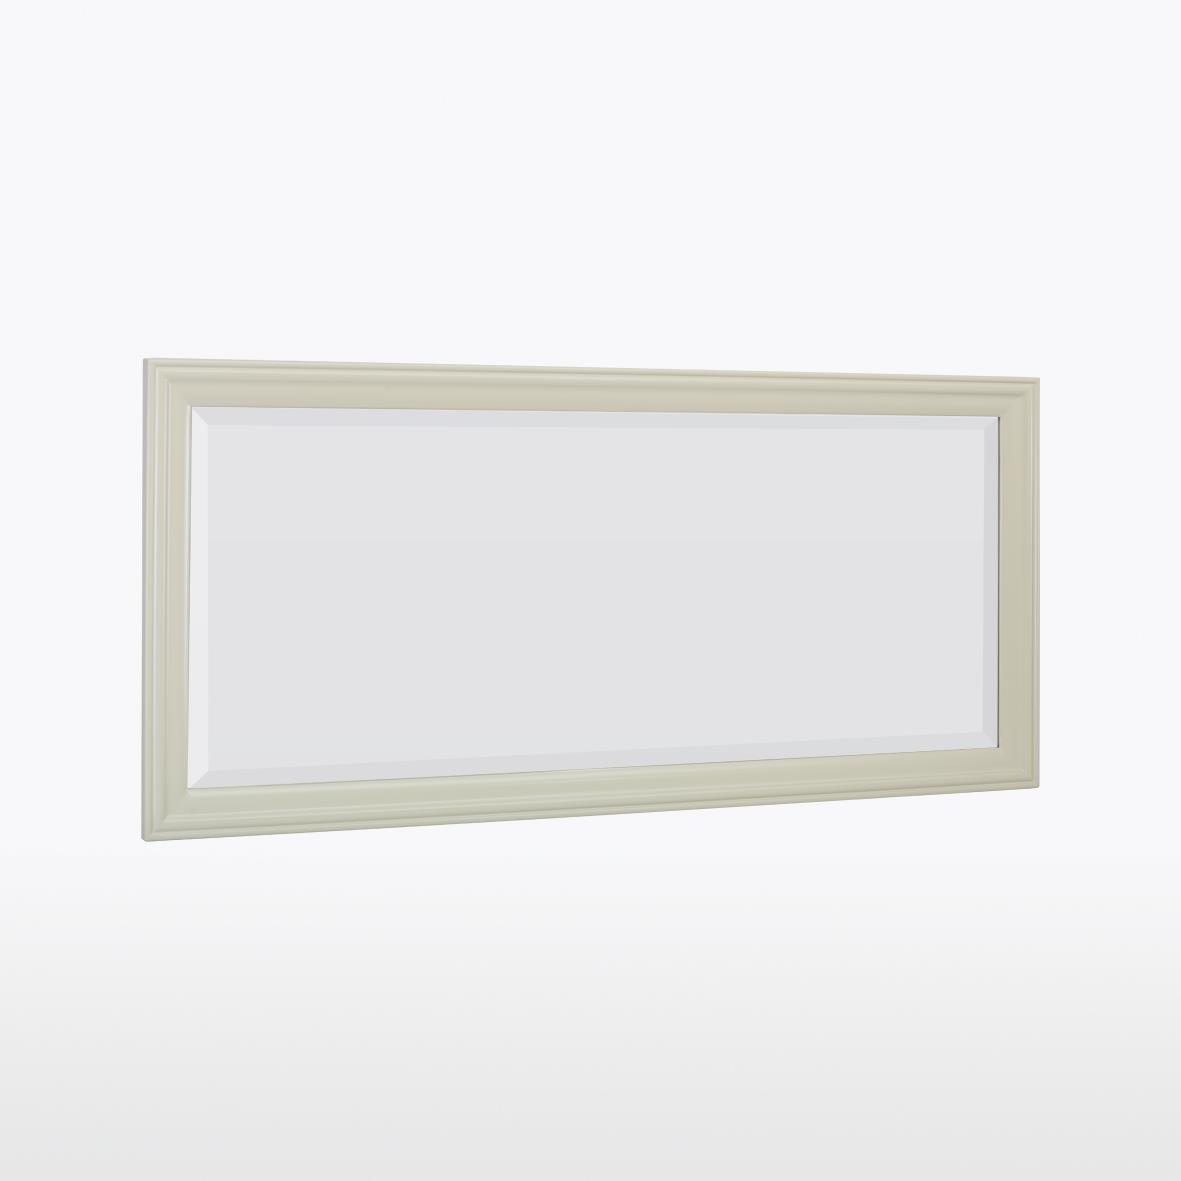 CROMWELL - Large Wall Mirror - CRO818 Toasted Almond